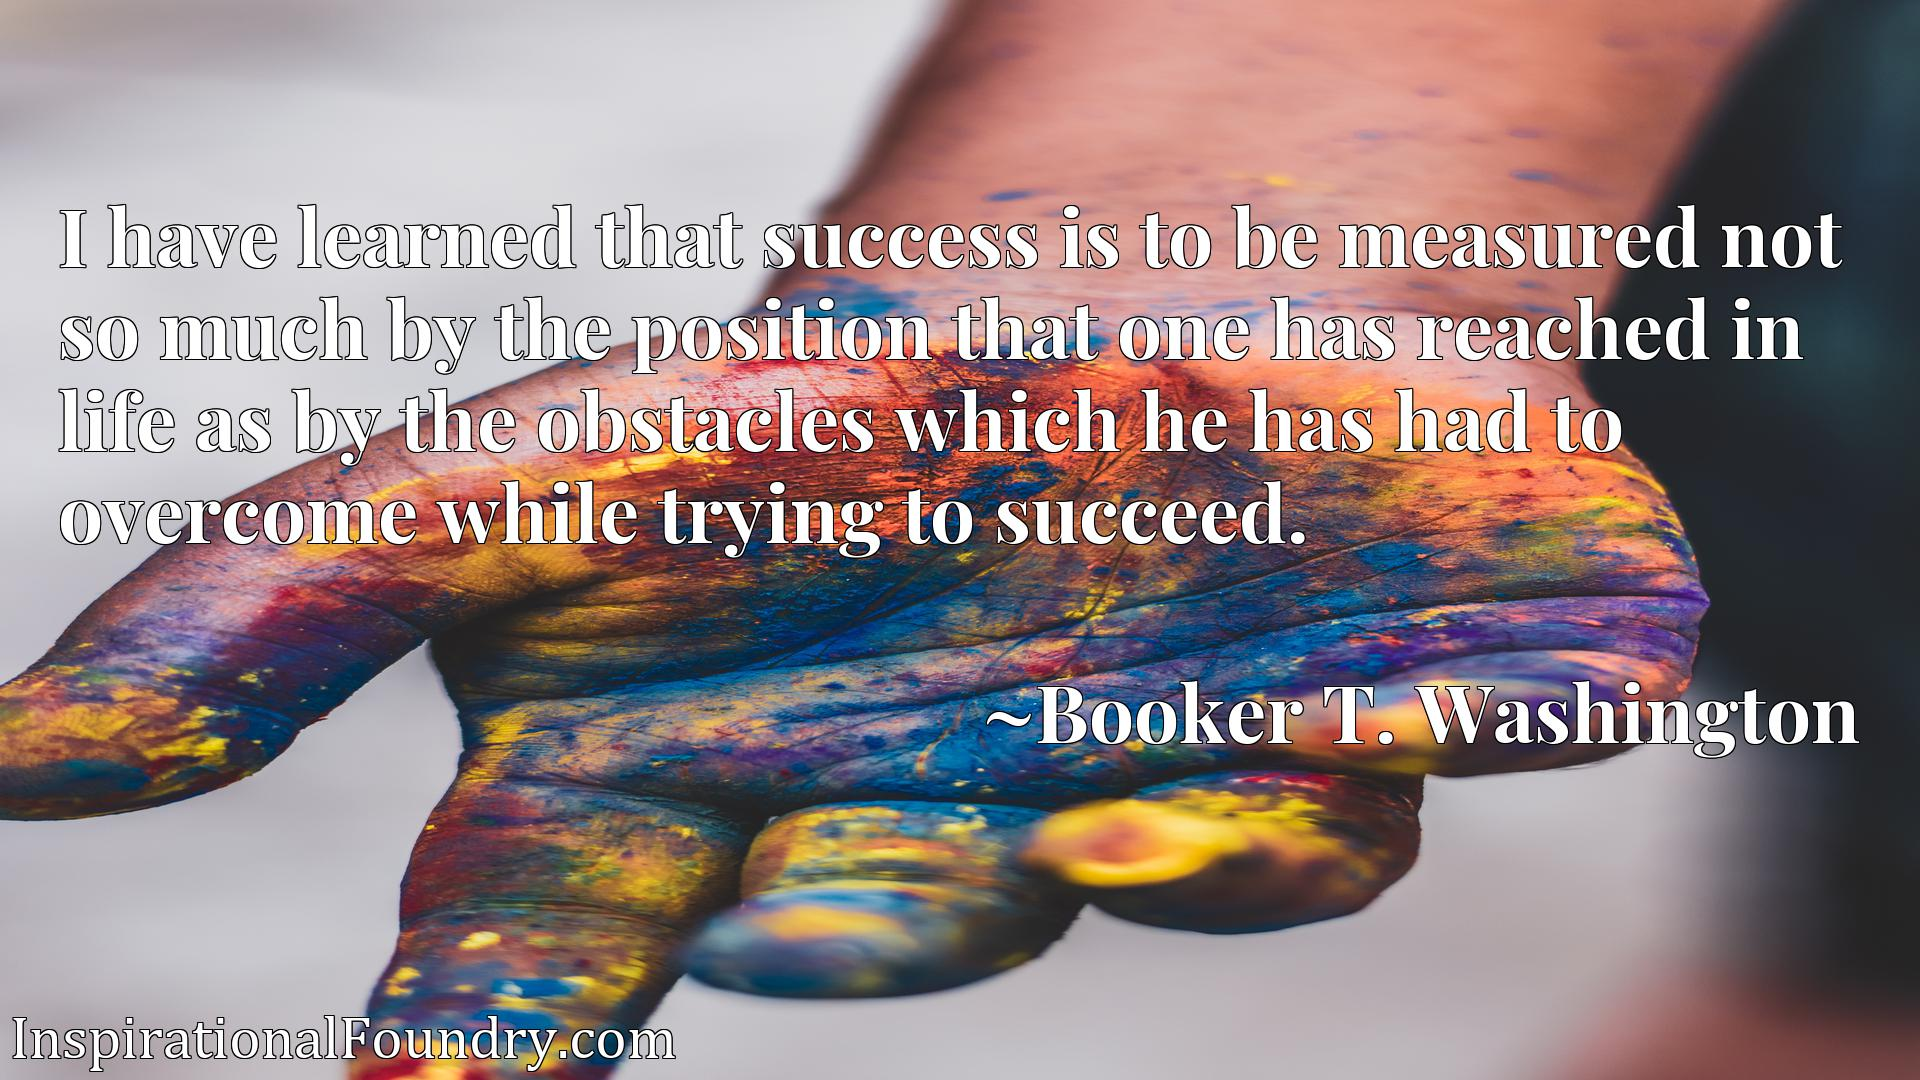 I have learned that success is to be measured not so much by the position that one has reached in life as by the obstacles which he has had to overcome while trying to succeed.